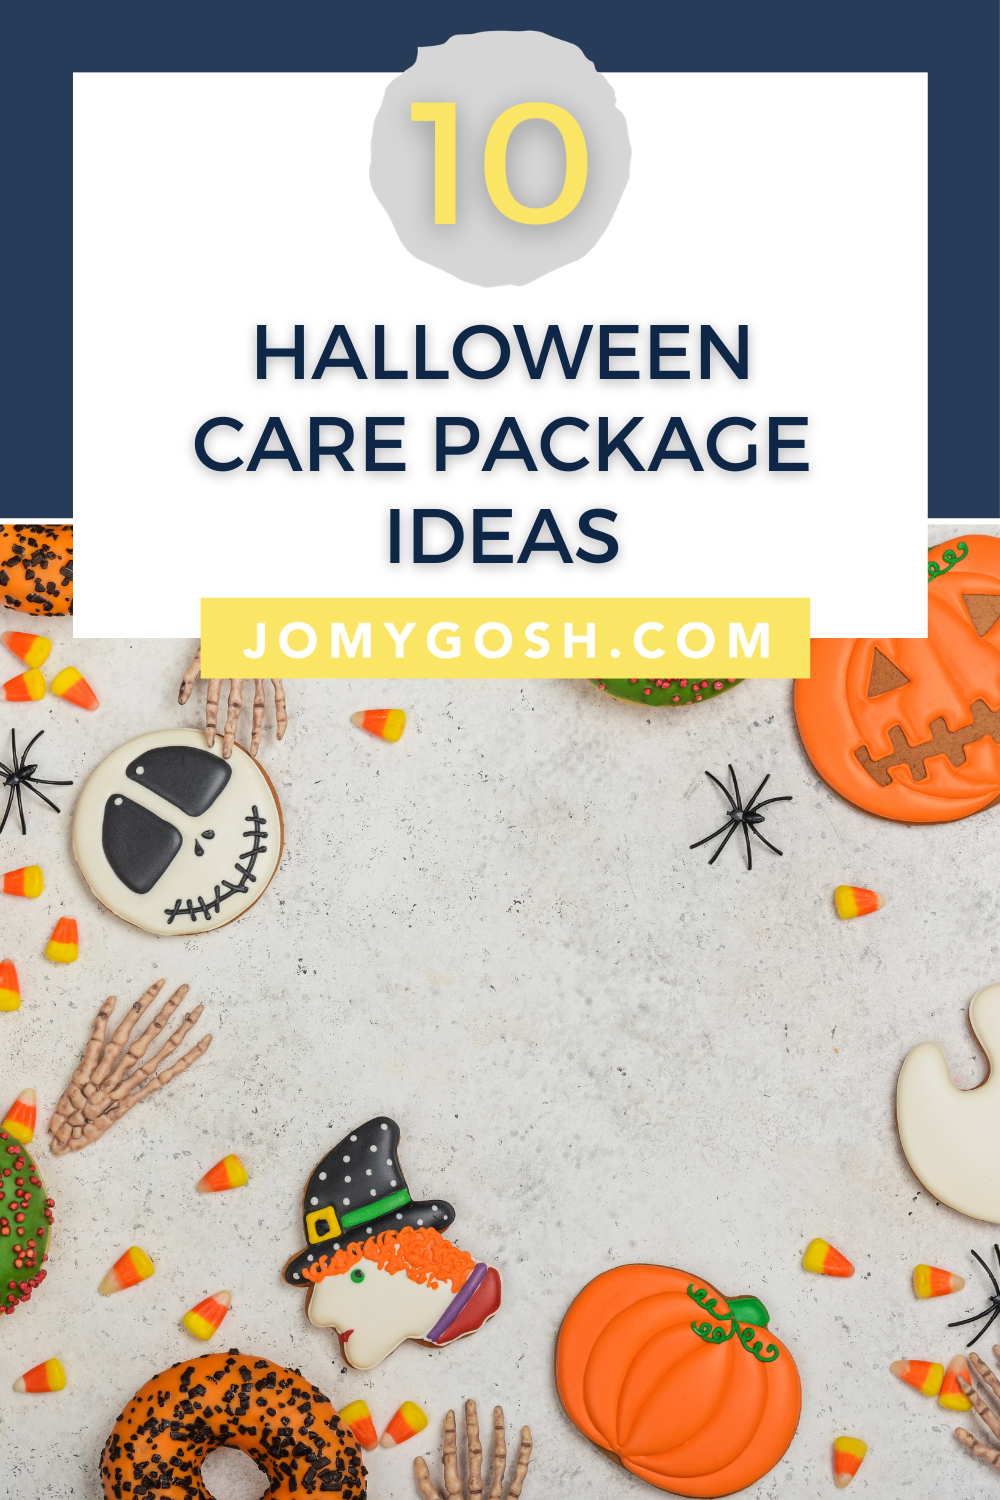 Use these care package ideas for Halloween celebrations. #halloween #carepackage #snailmail #sendmoremail #happymail #military #militaryfamily #milfam #milspouse #militaryspouse #milspouses #militaryspouses #milso #milsos #milspo #milspos #missonary #missionaries #college #collegestudent